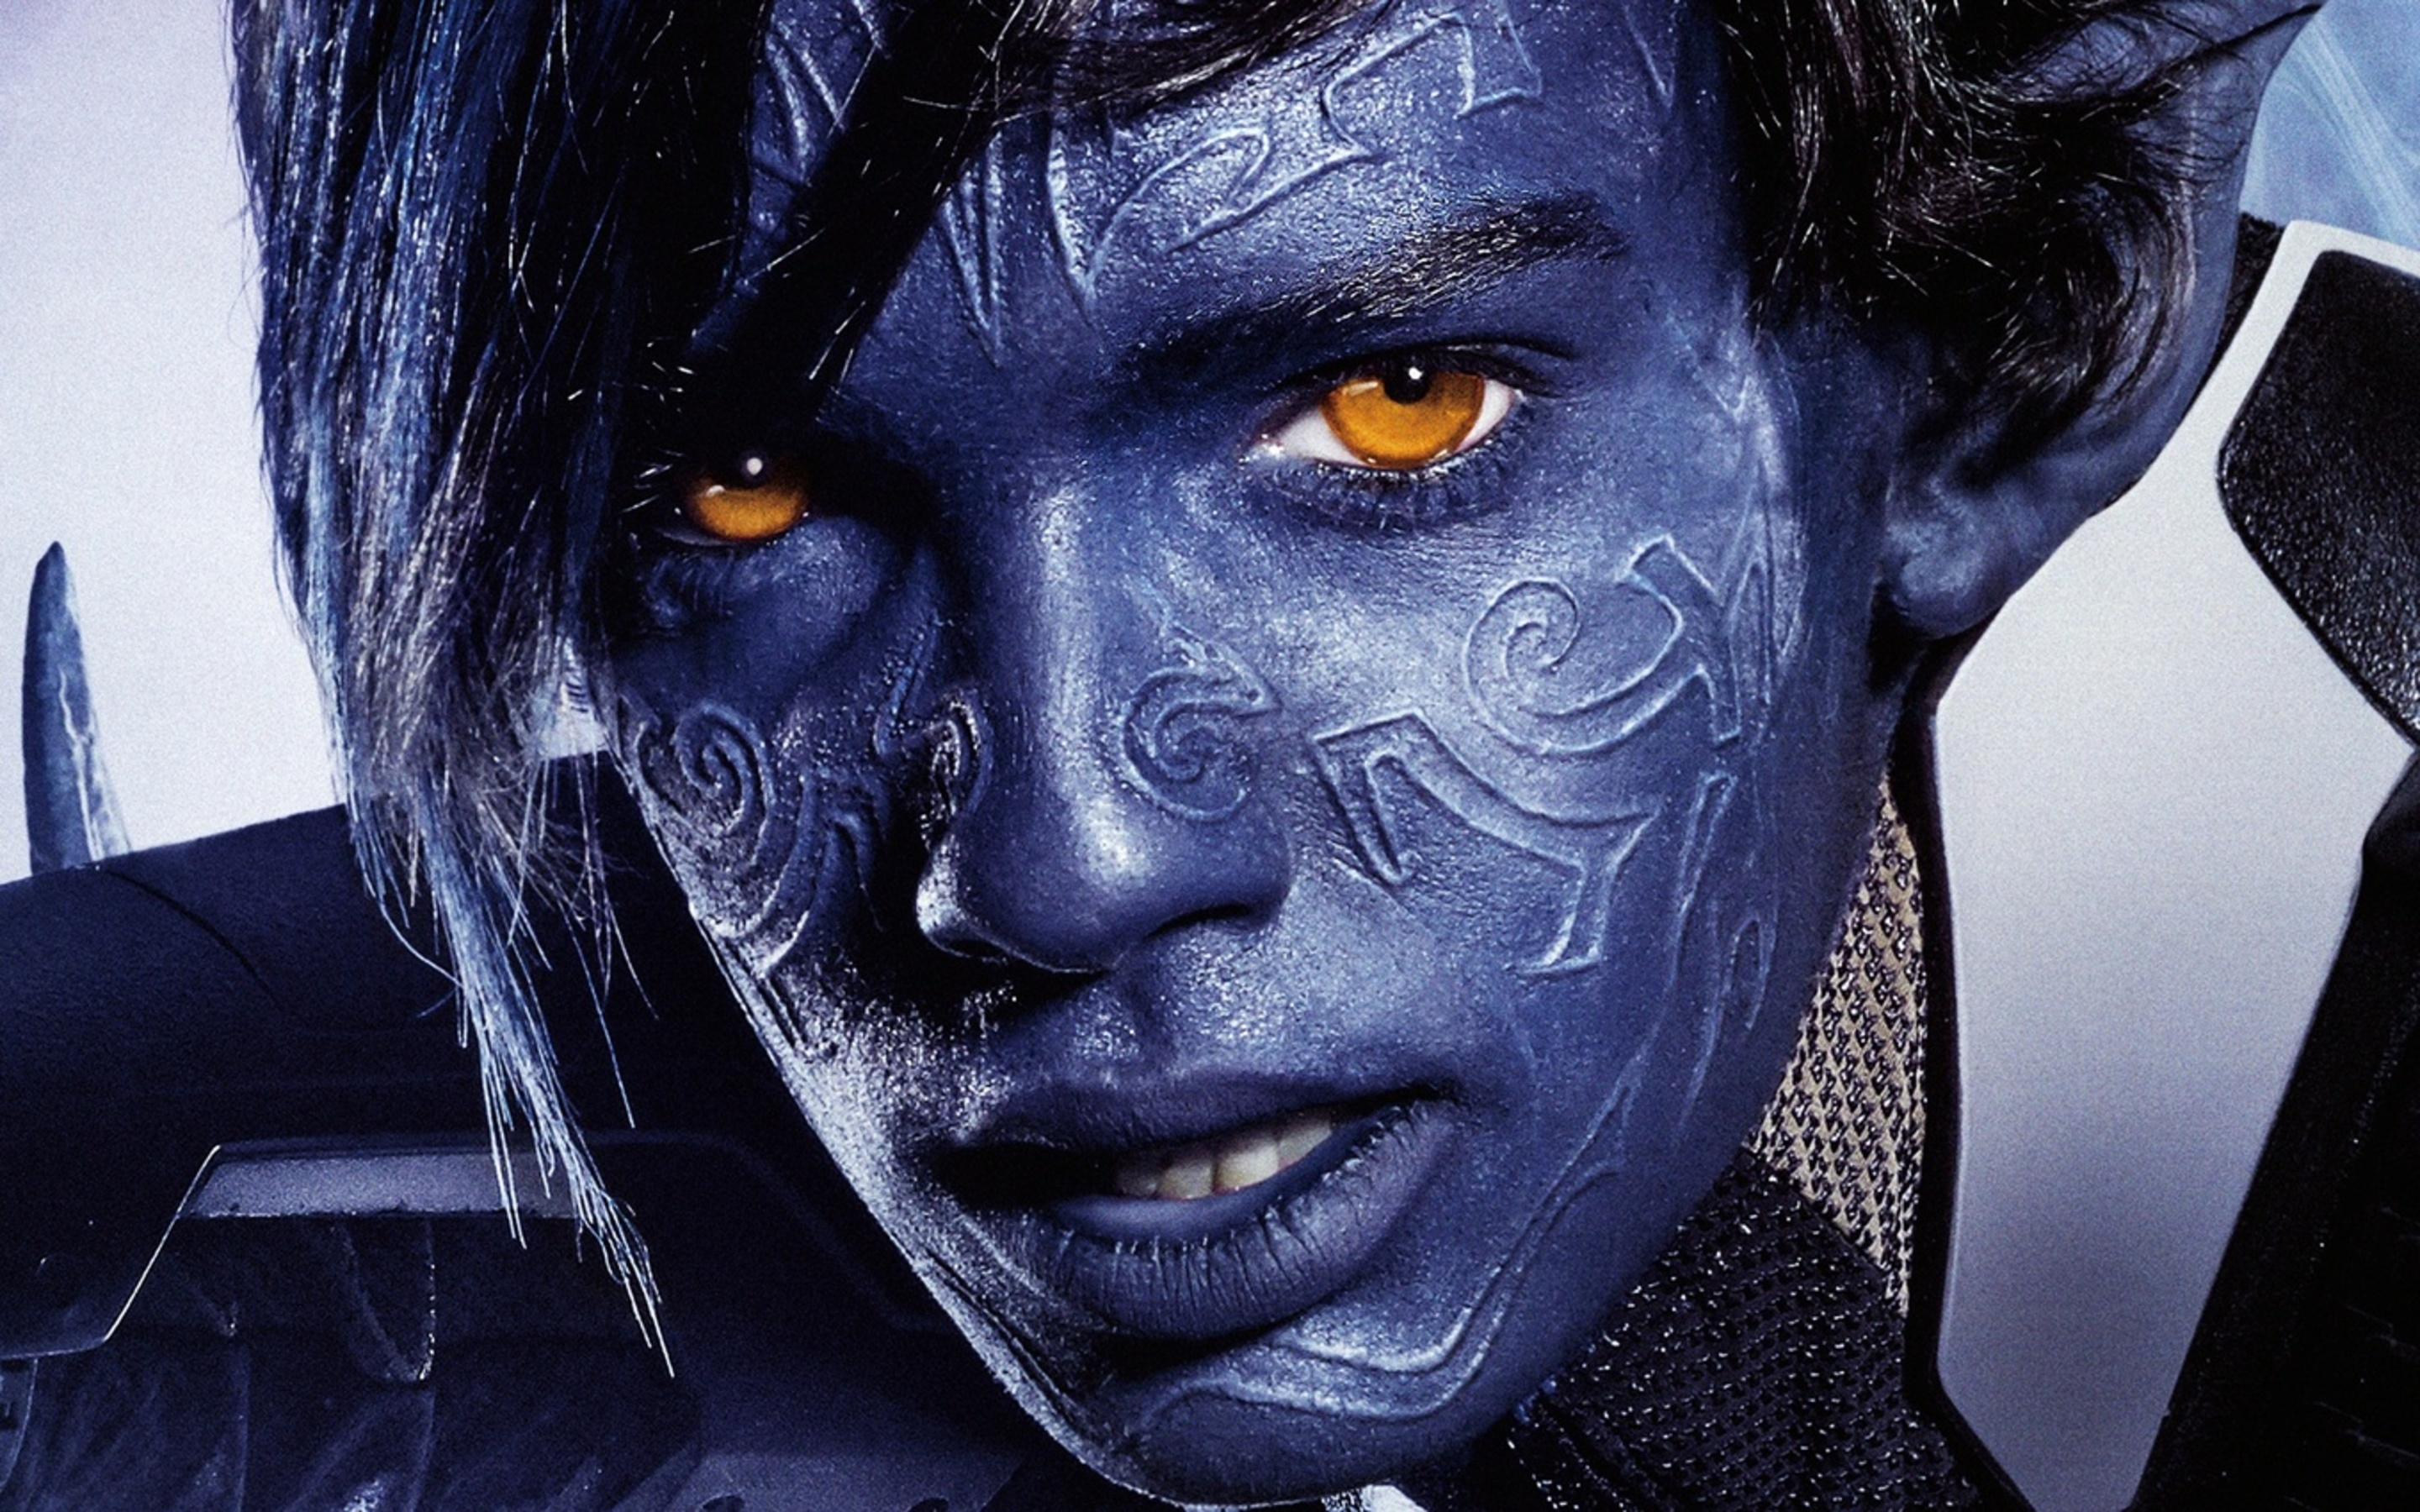 2880x1800 night crawler x men apocalypse macbook pro retina hd 4k